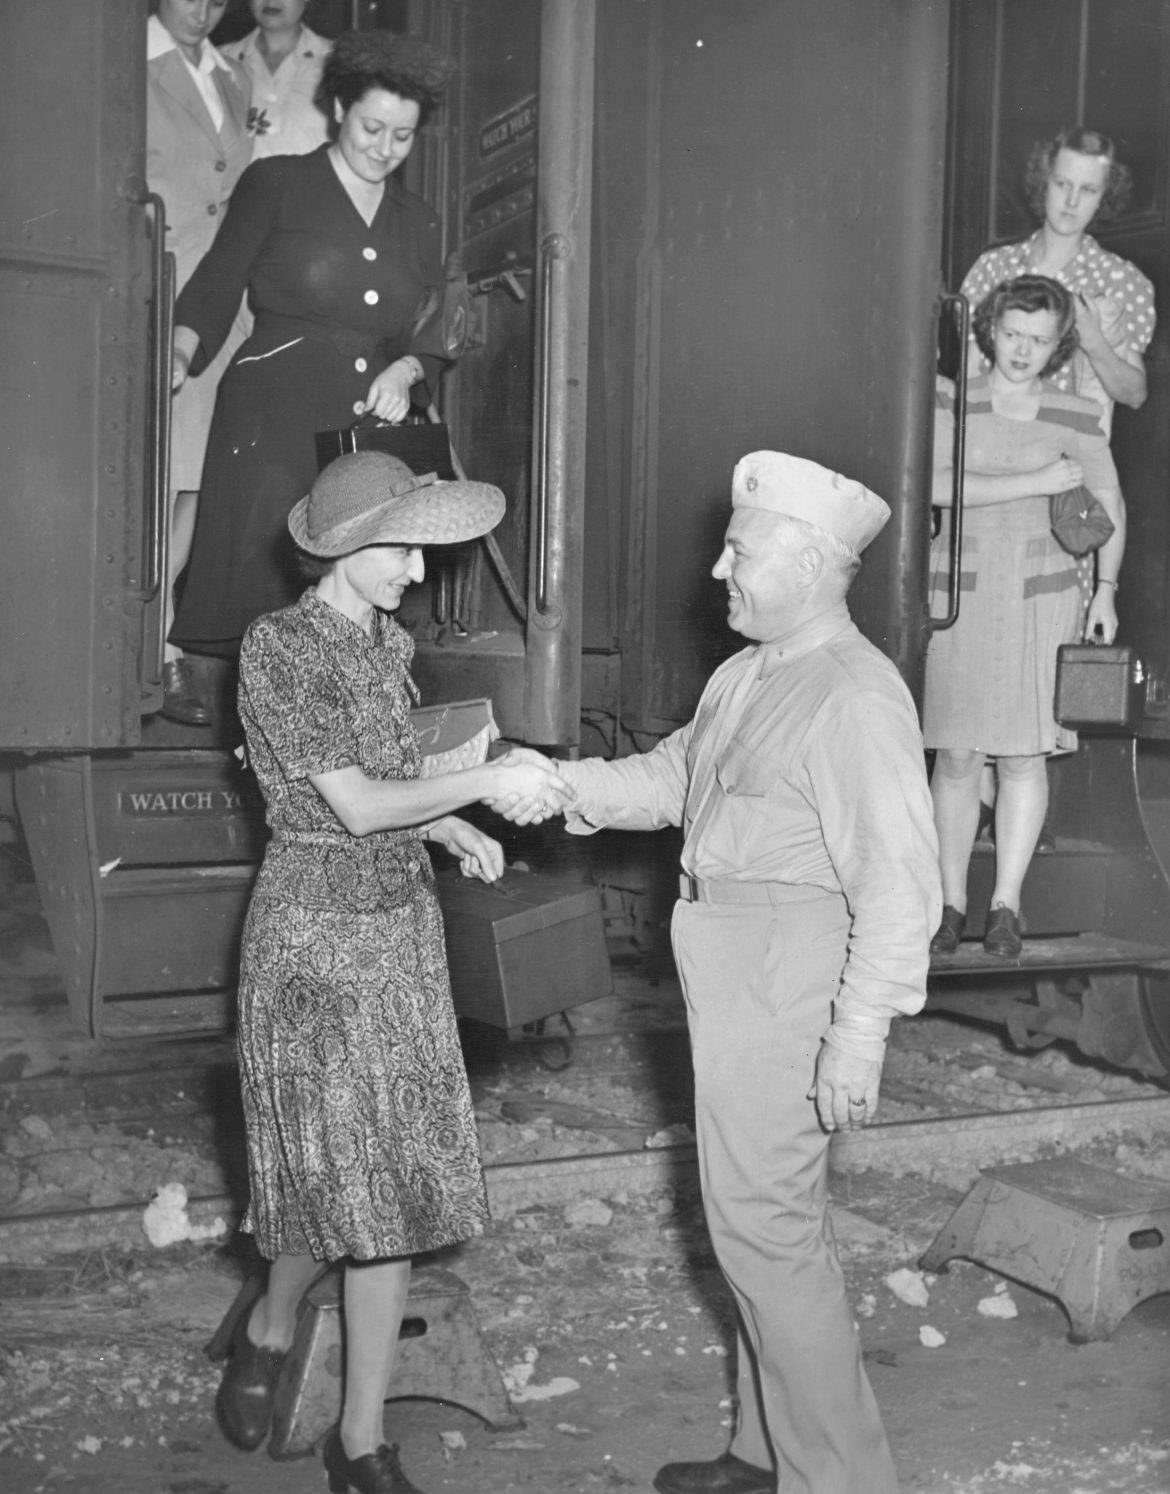 Woman Marine Recruits Arrive on Troop Train